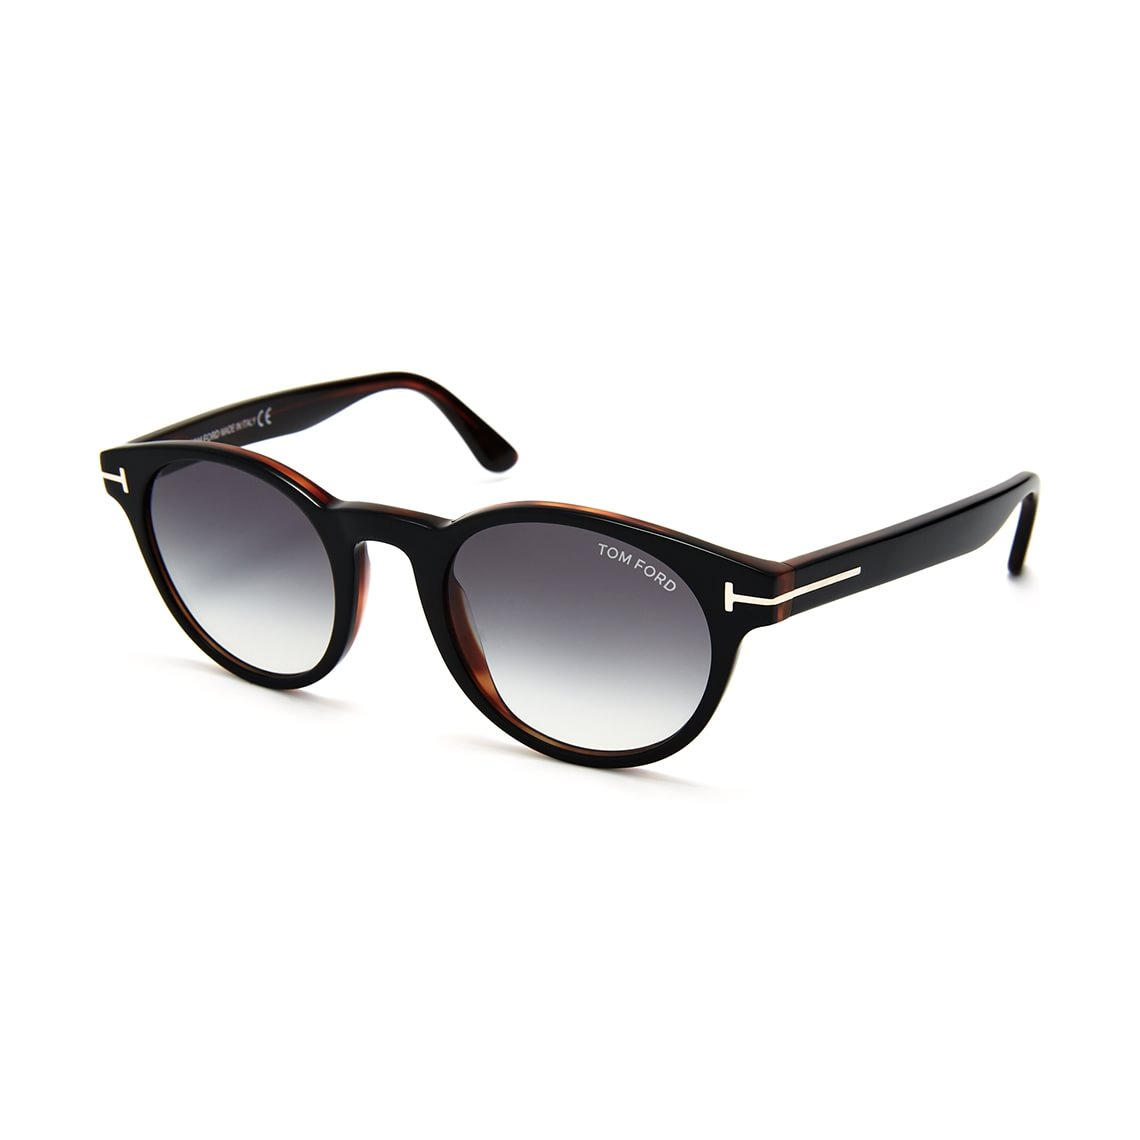 Tom Ford FT0522 05B 4921